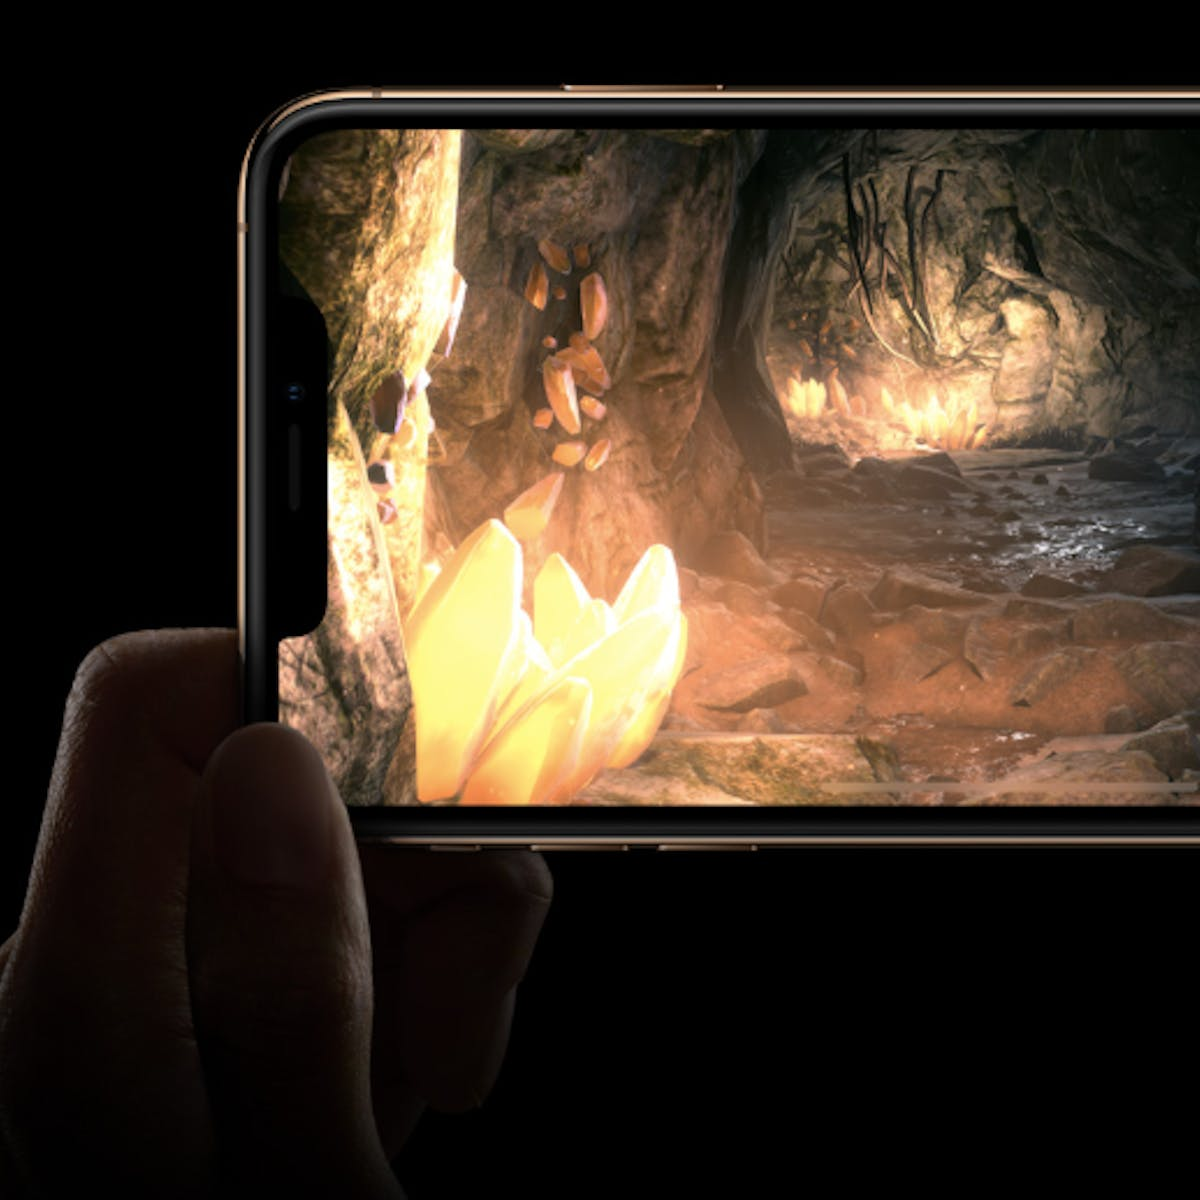 A New Apple Patent Offers a Radically New Vision for Future Smartphones